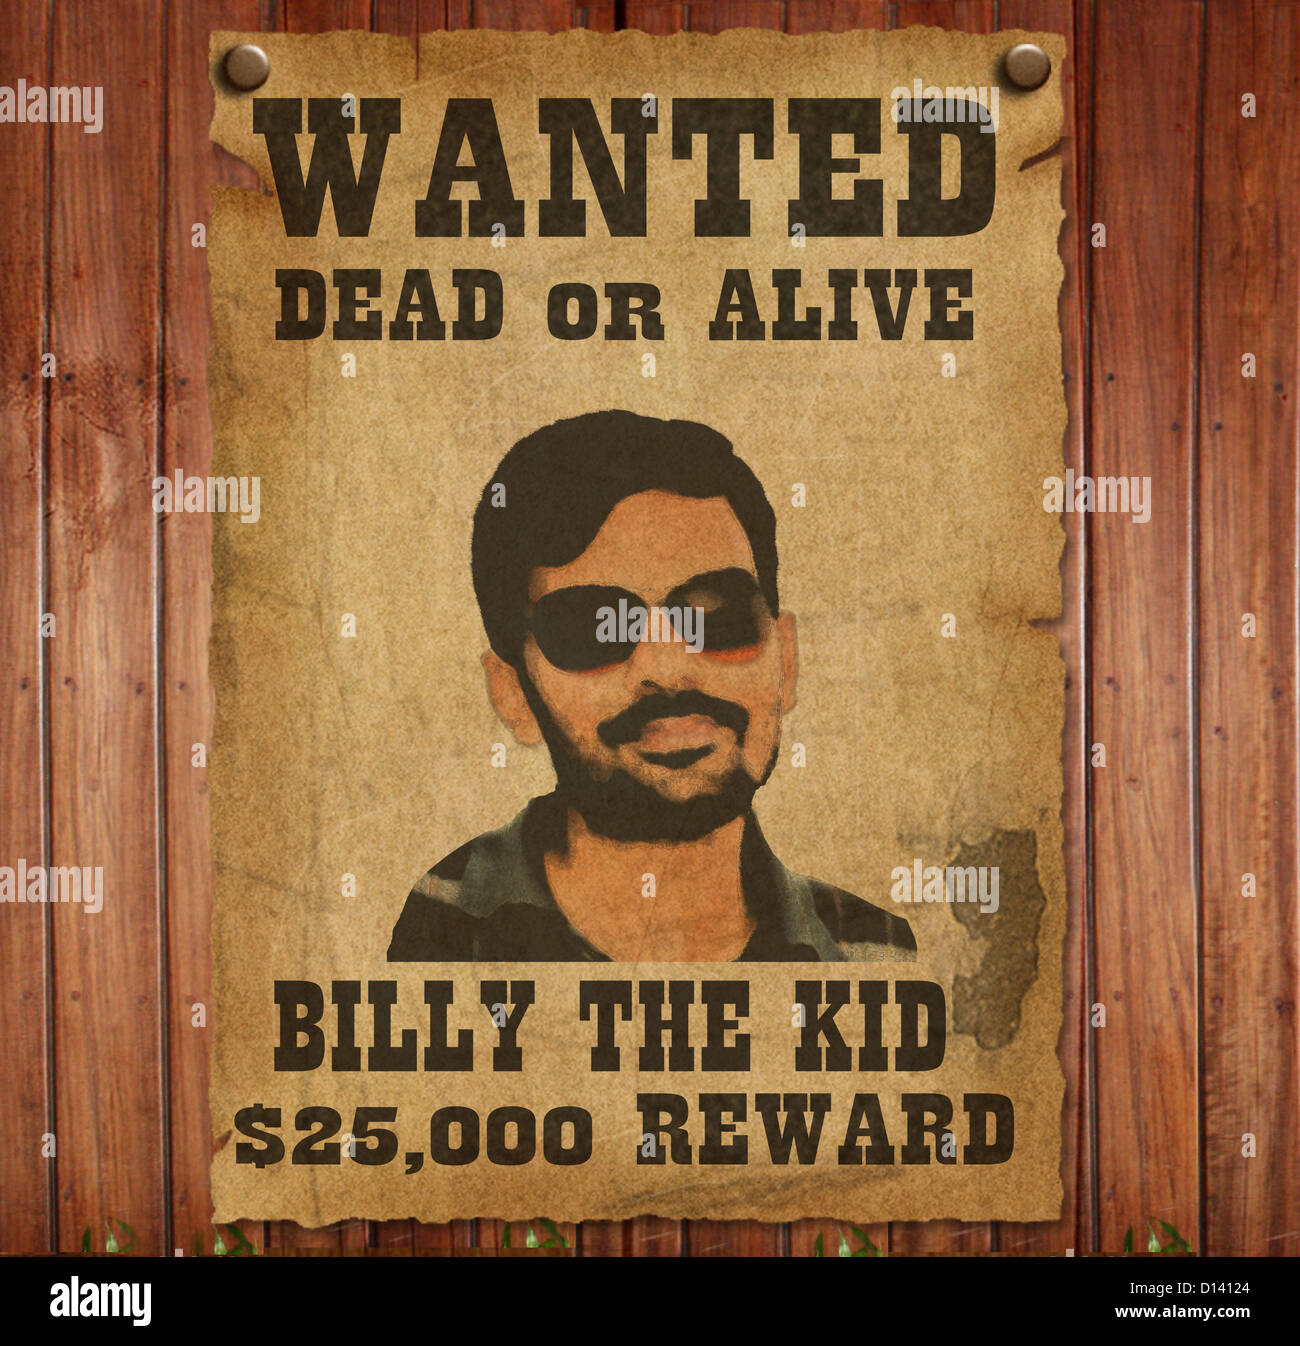 Wanted Poster Template with Bounty Reward Stock Photo: 52334412 - Alamy